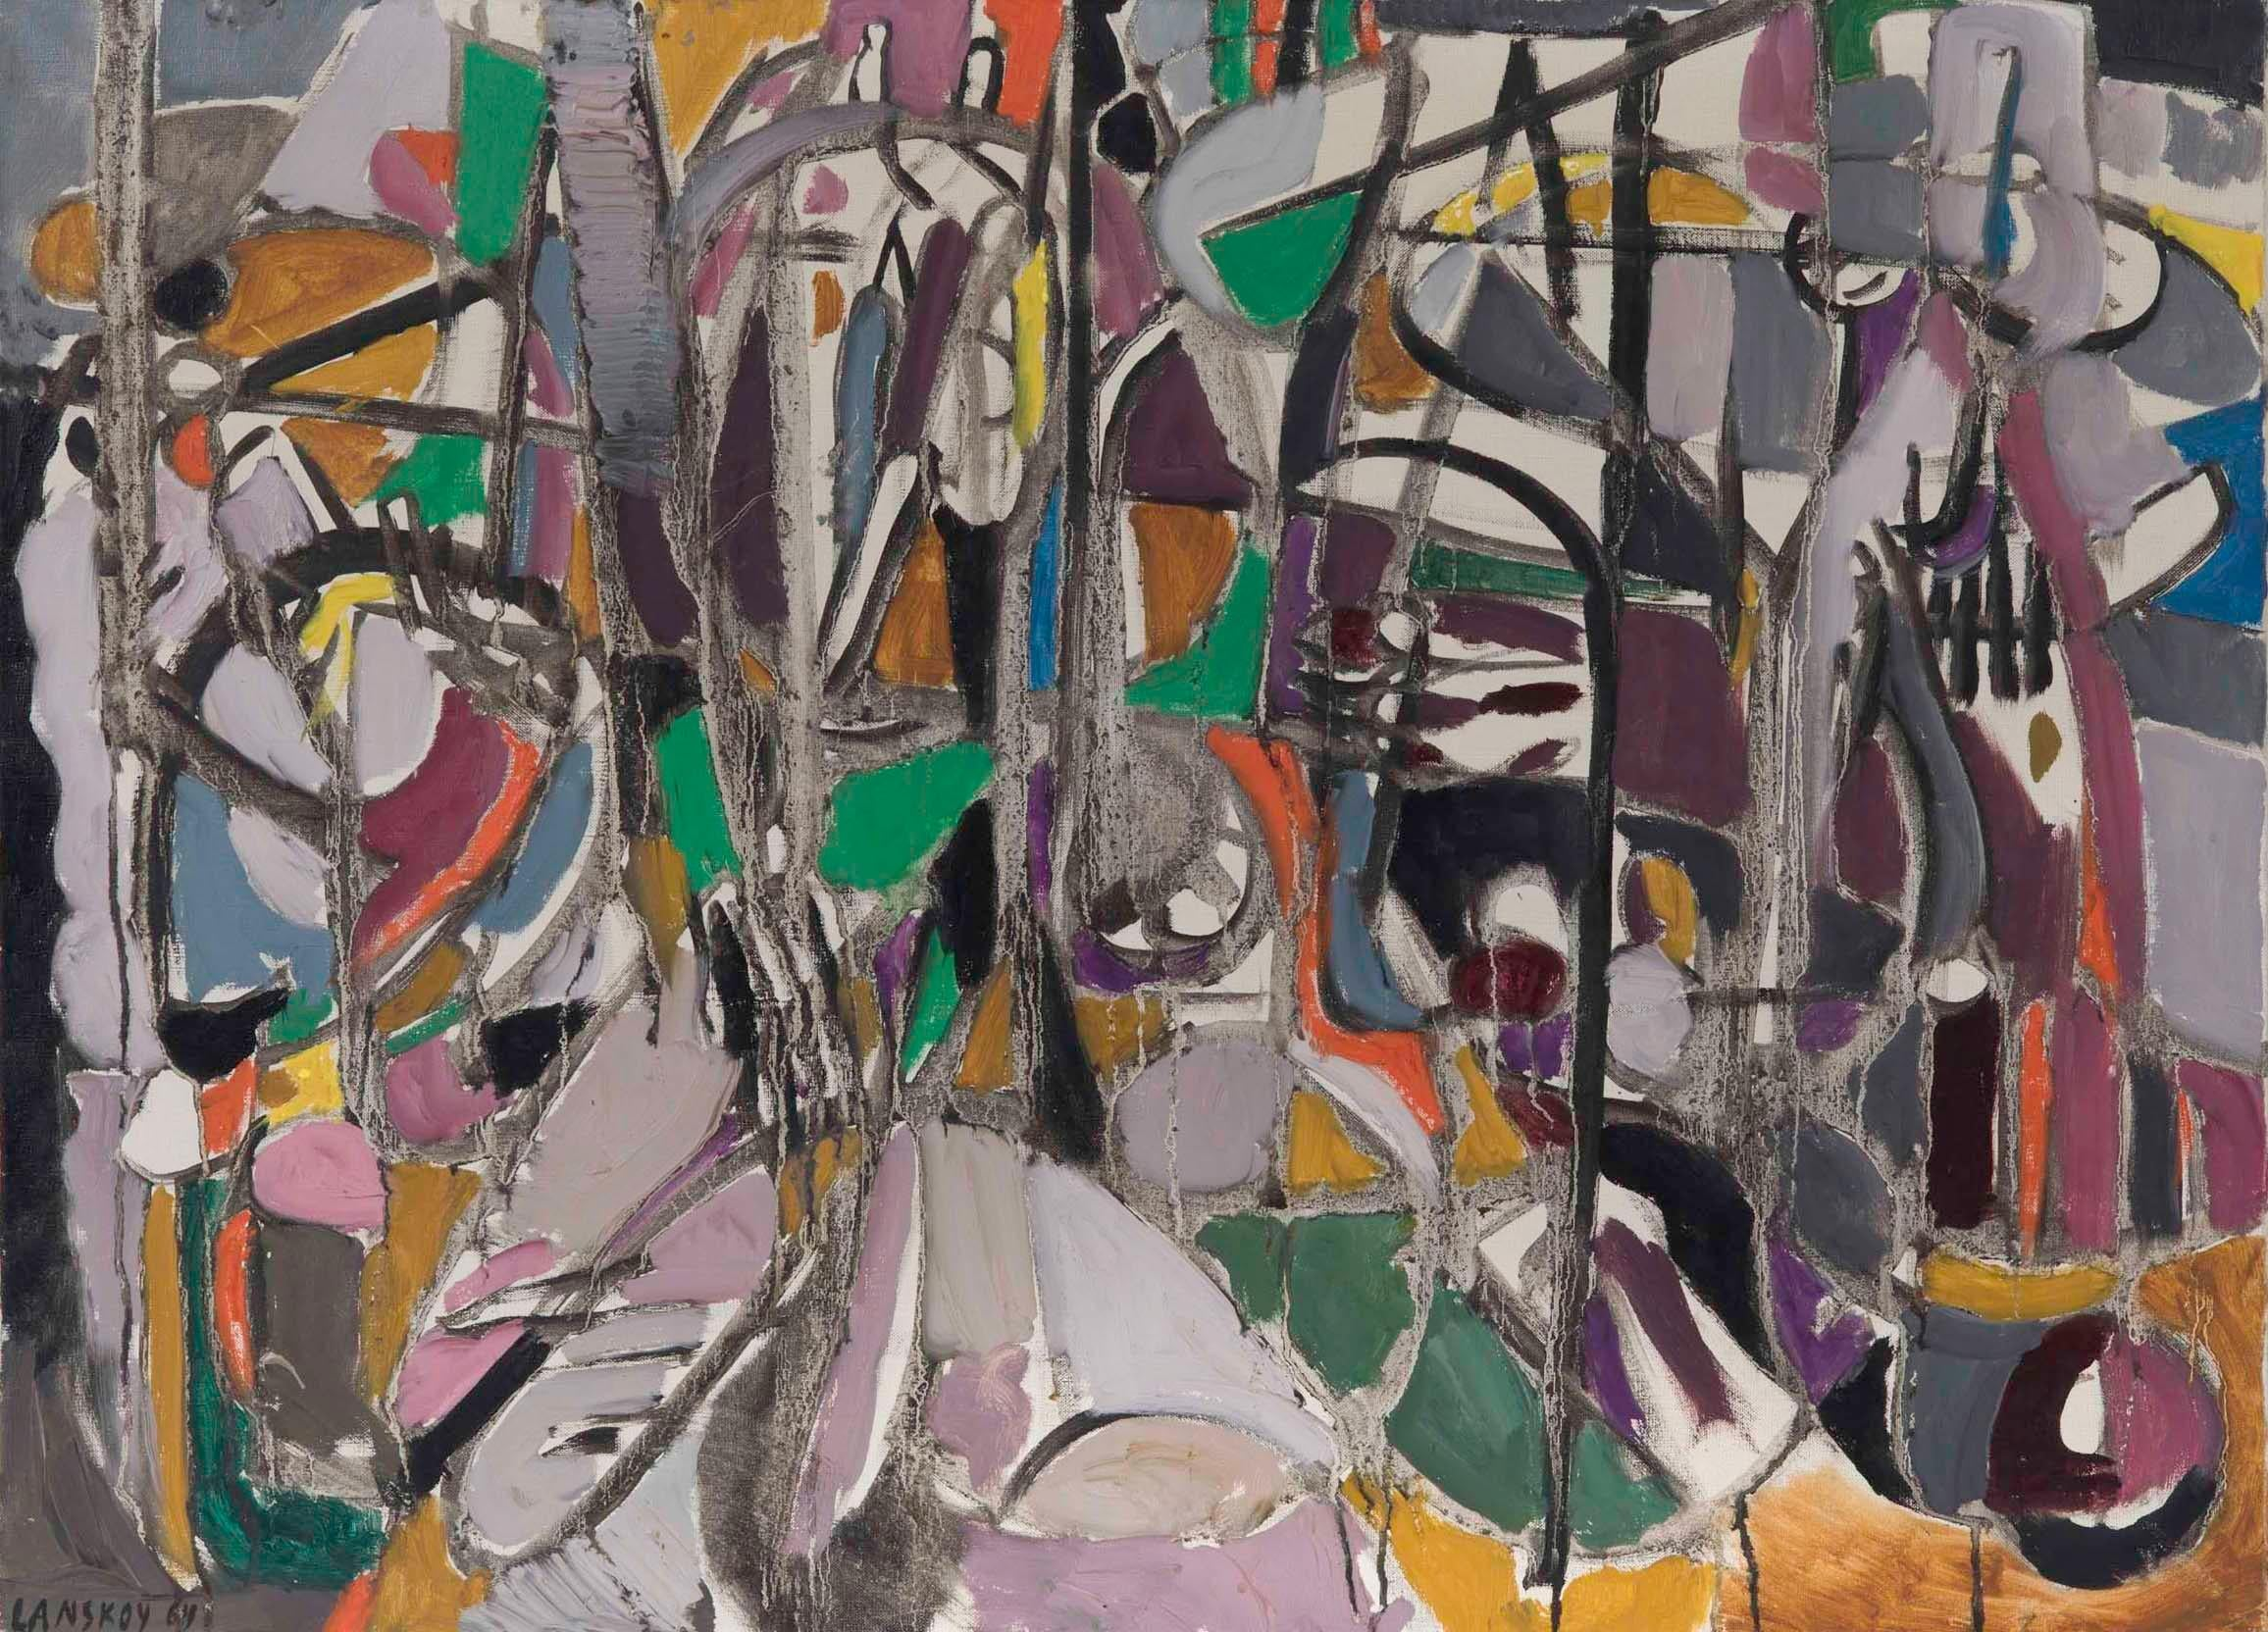 Andre Lanskoy - Composition, modern, abstract, painting, french, colourful